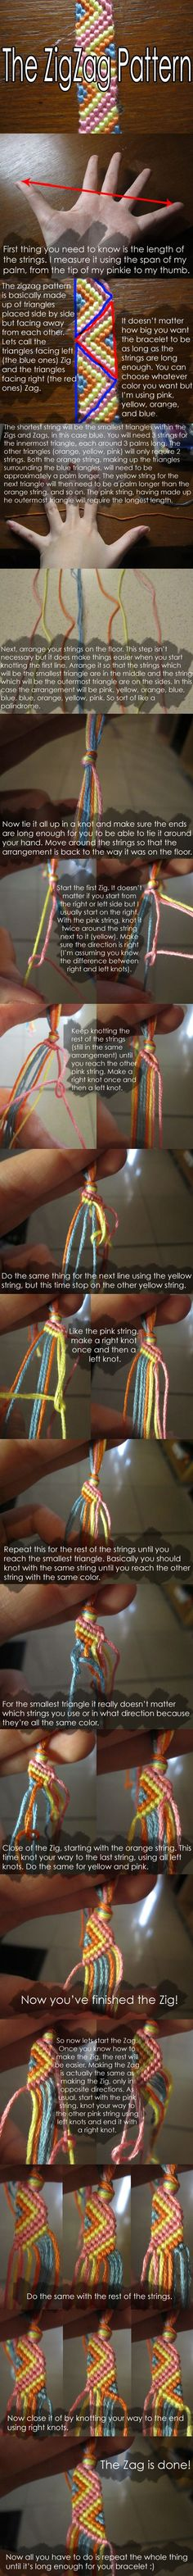 Zigzag Bracelet Tutorial by on deviantART by mvaleriaTutorial: Pop Can Tab BraceletZigzag Bracelet Tutorial always wanted to learn how to do this! by rosellaZigzag Bracelet Tutorial by - most detailed tutorial I've ever seen.Zigzag Bracelet - Made so many Diy Friendship Bracelets Patterns, Diy Bracelets Easy, Summer Bracelets, Bracelet Crafts, Can Tab Bracelet, Kumihimo Bracelet, Macrame Bracelets, String Bracelets, Crochet Bracelet